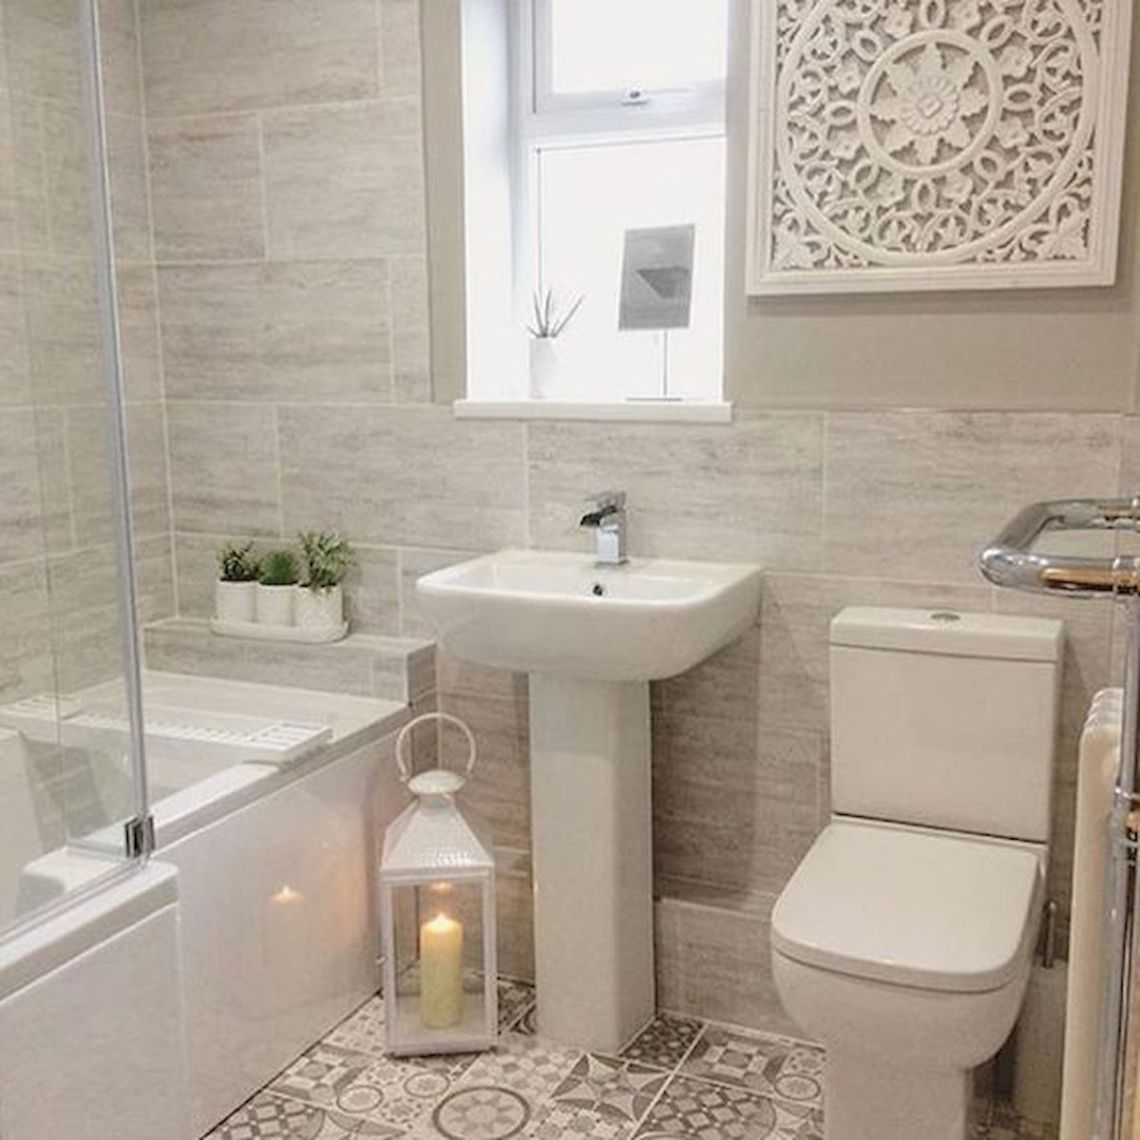 50 Cozy Bathroom Design Ideas for Small Space in Your Home ...